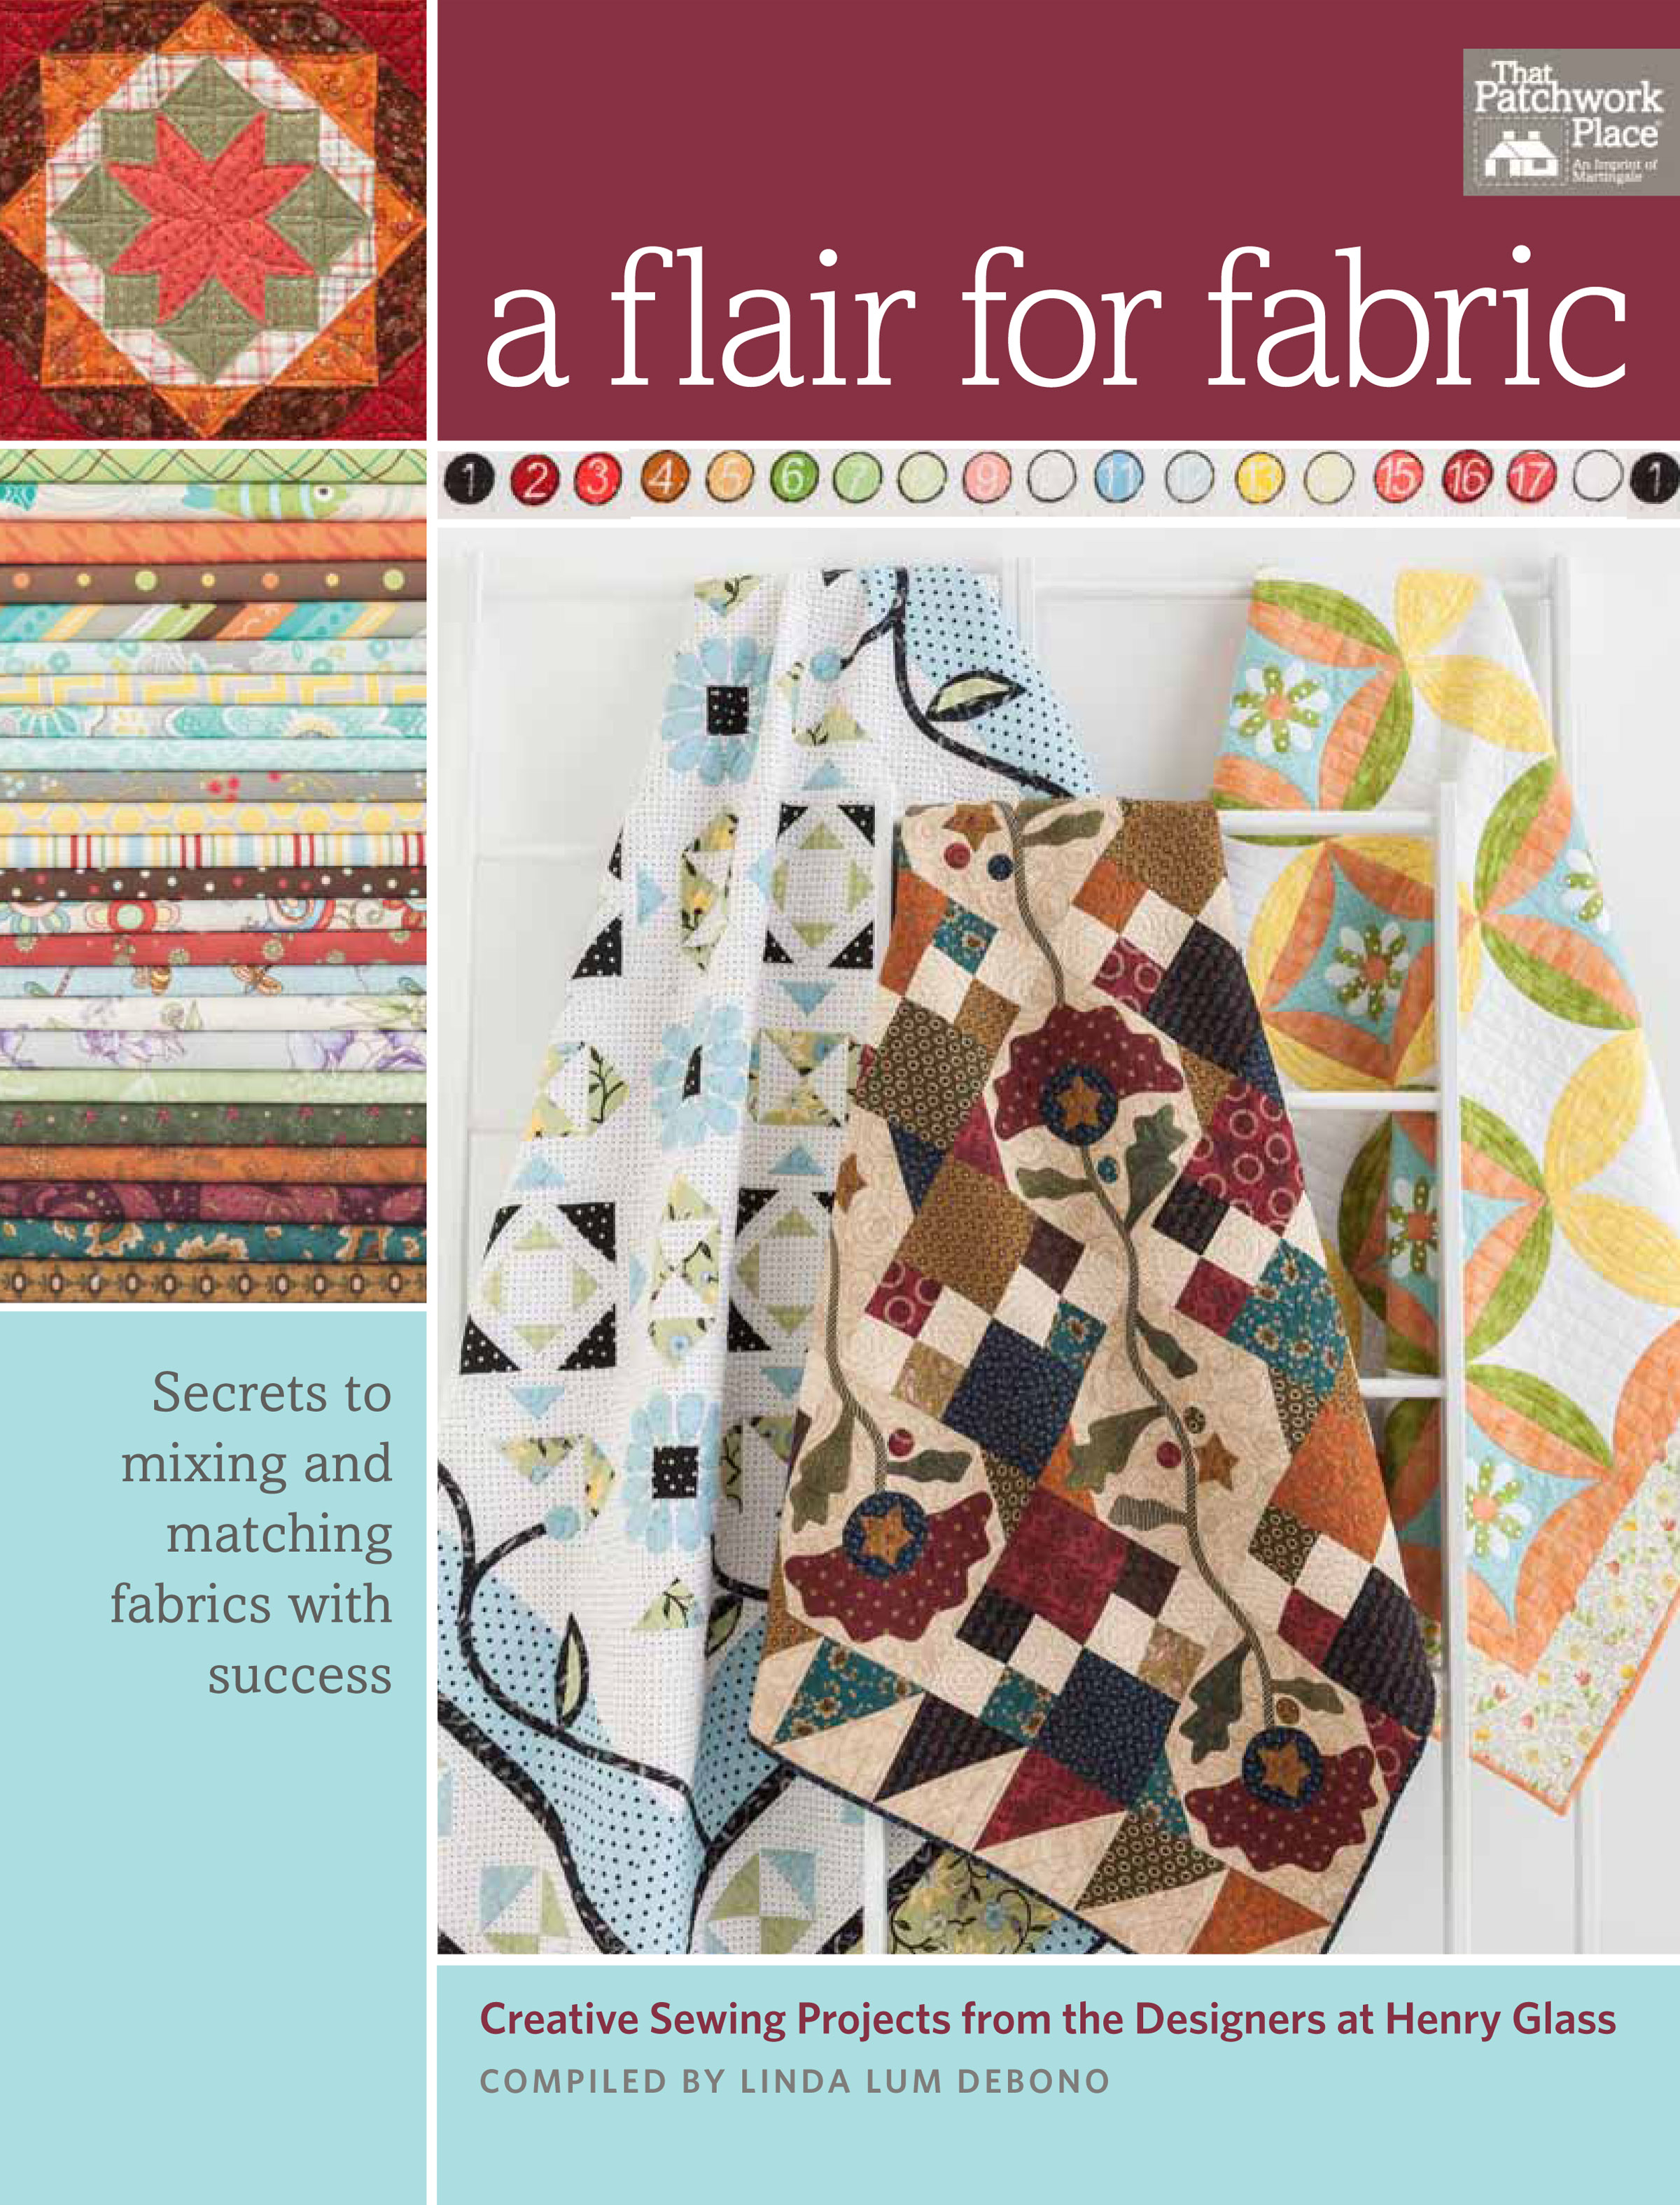 A Flair For Fabric. Compiled by Linda Lum DeBono. Published by Martingale & Co.